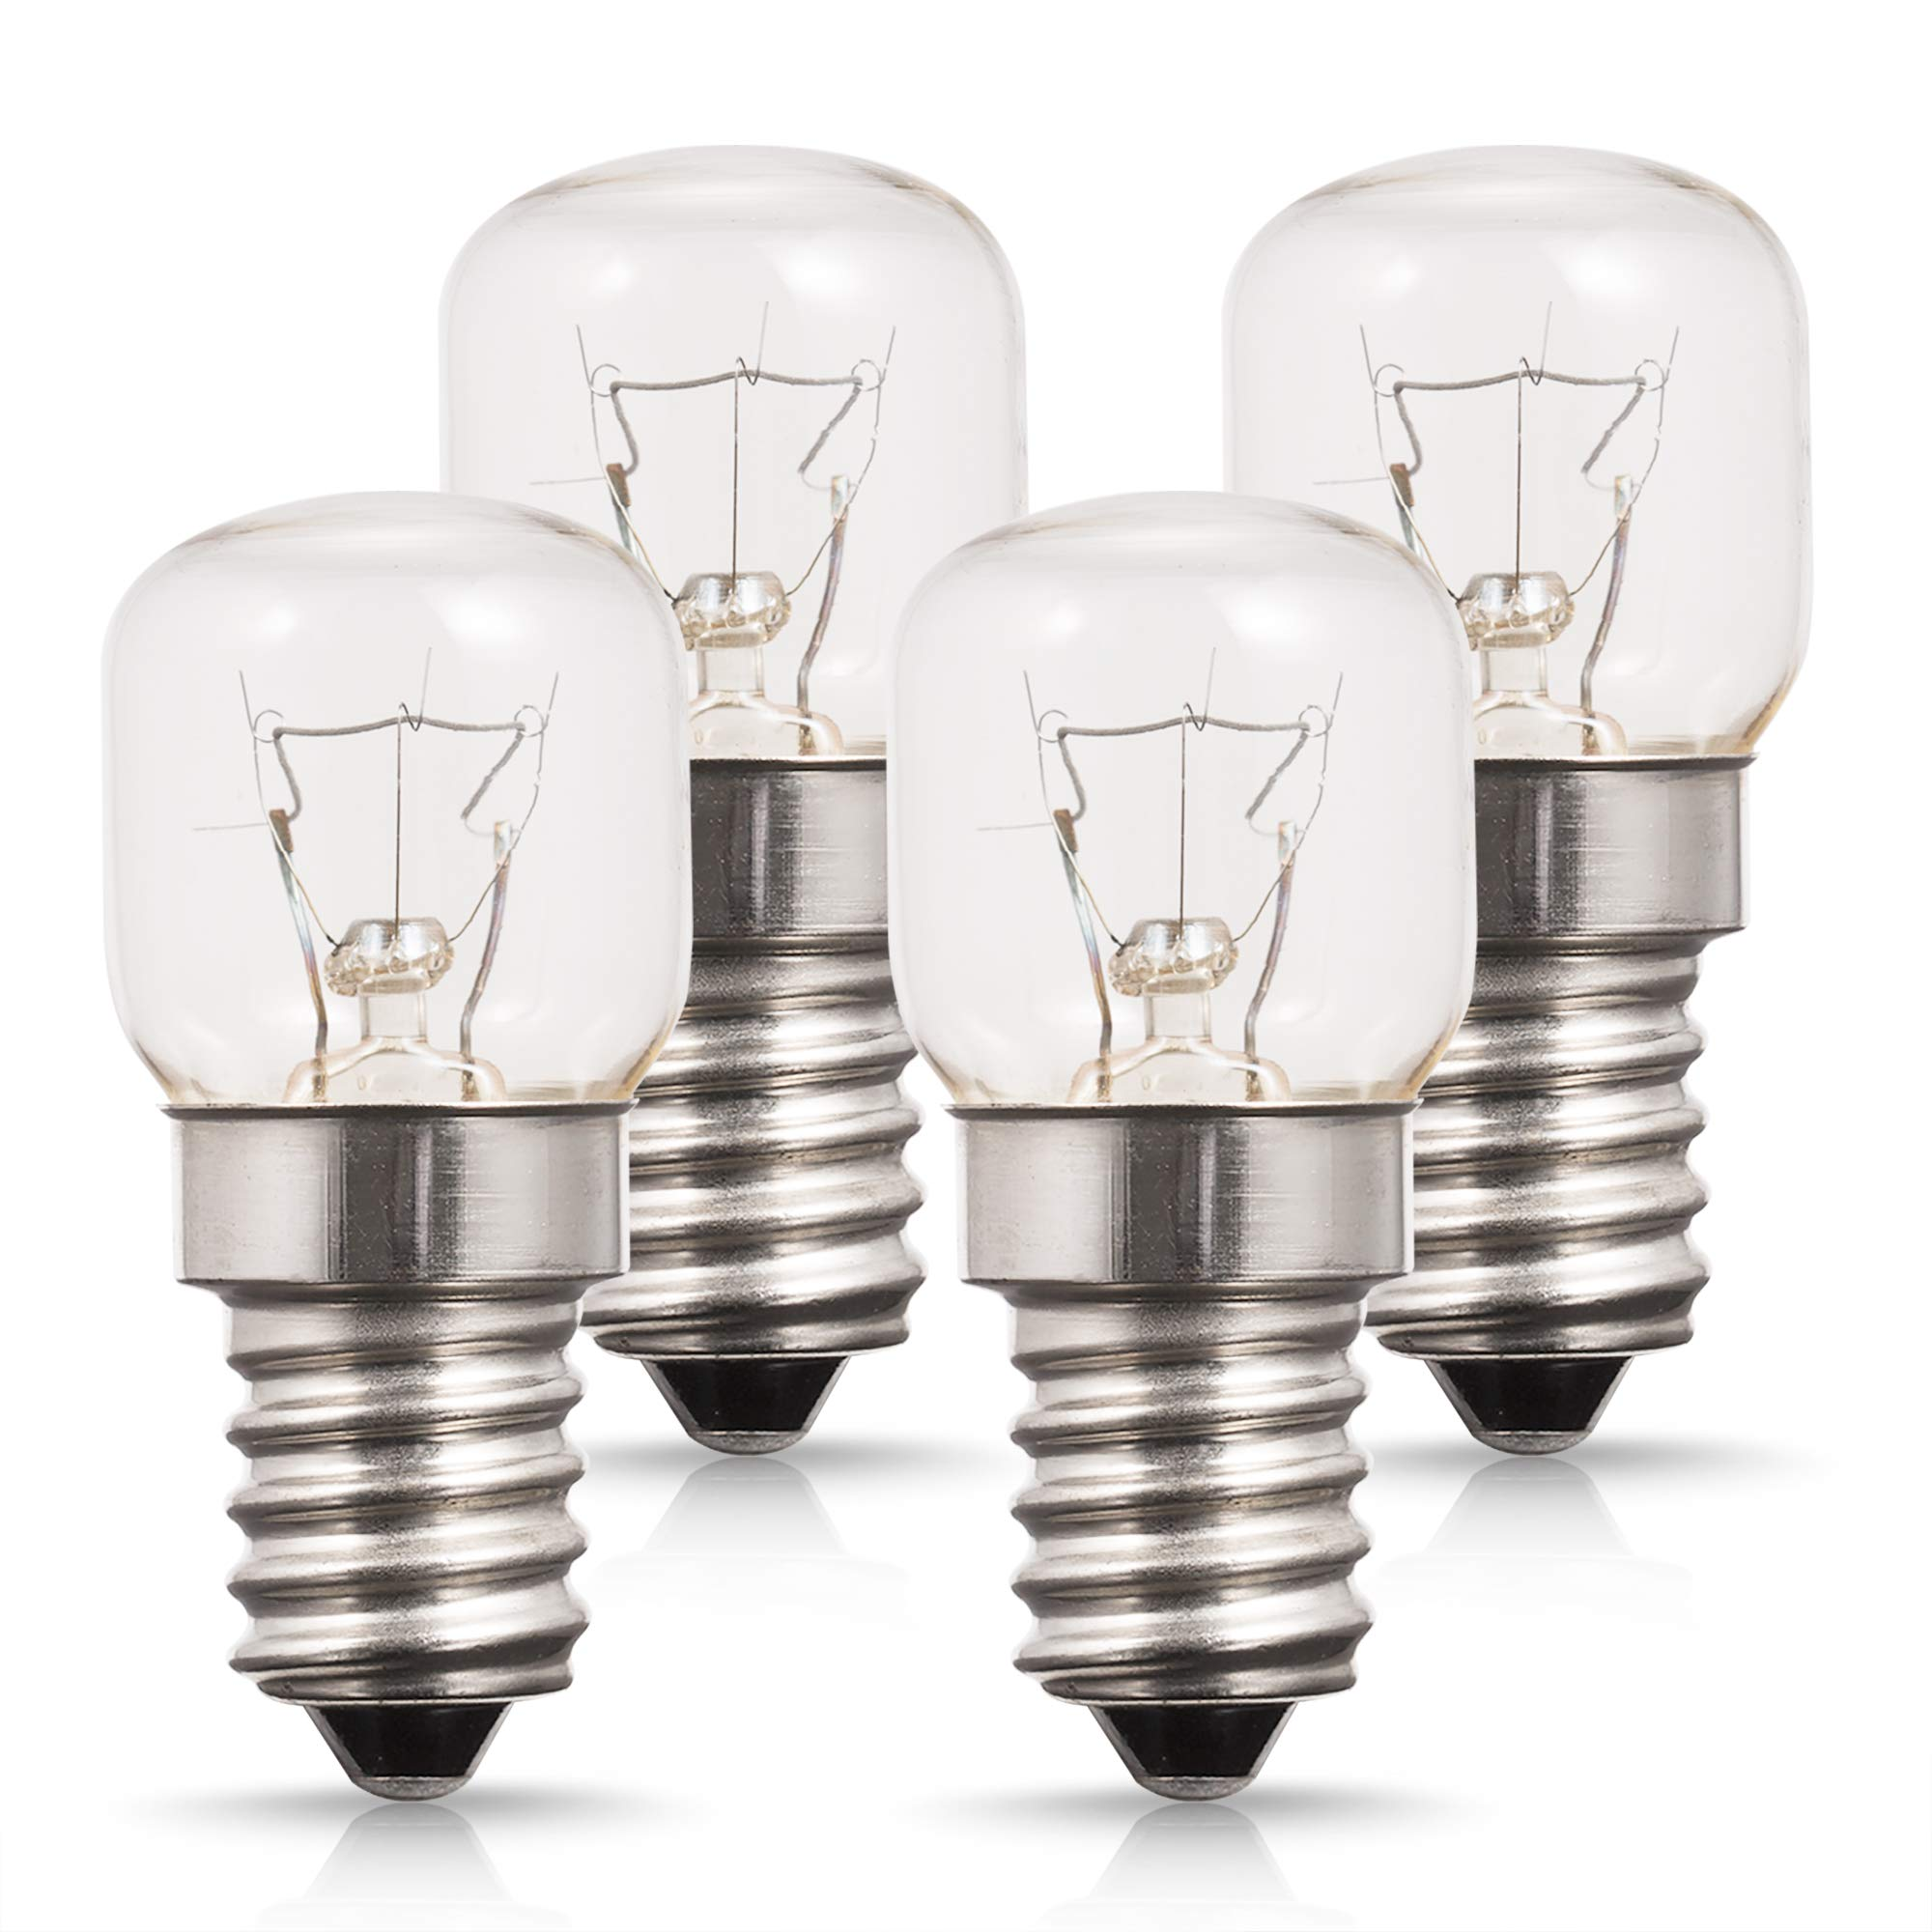 4X Incandescent Bulb, Techgomade E14 Small Edison Screw Base, Oven Light Bulbs, Tungsten Light, up to 300 Degrees 25W Incandescent Bulb, 2700K Warm White, Non-dimmable [Energy Class C]